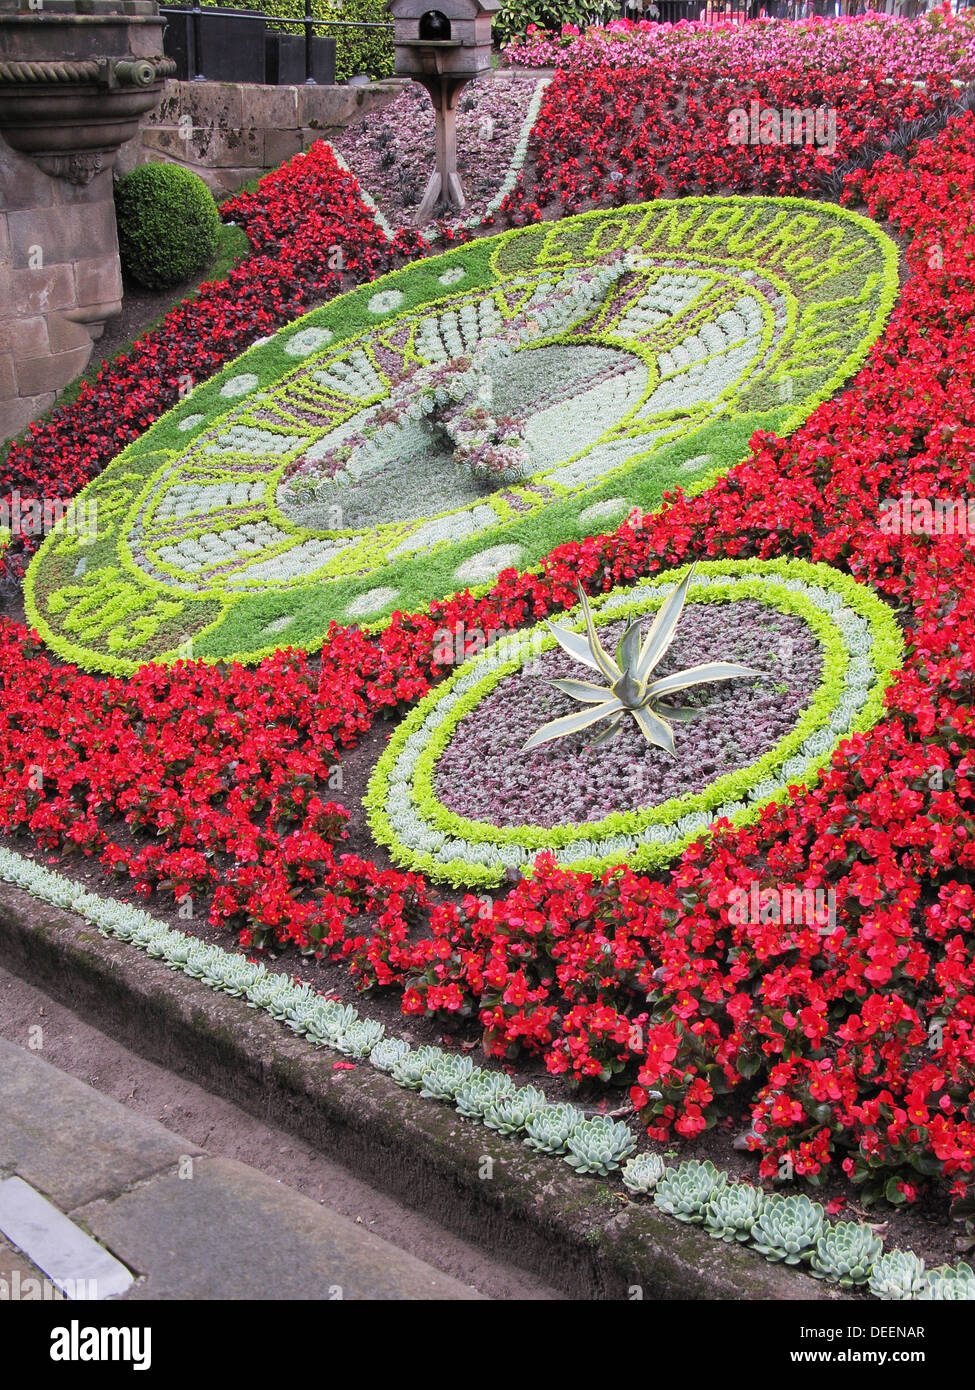 Floral Clock, Princes Street Gardens, Edinburgh, Scotland, UK - Stock Image